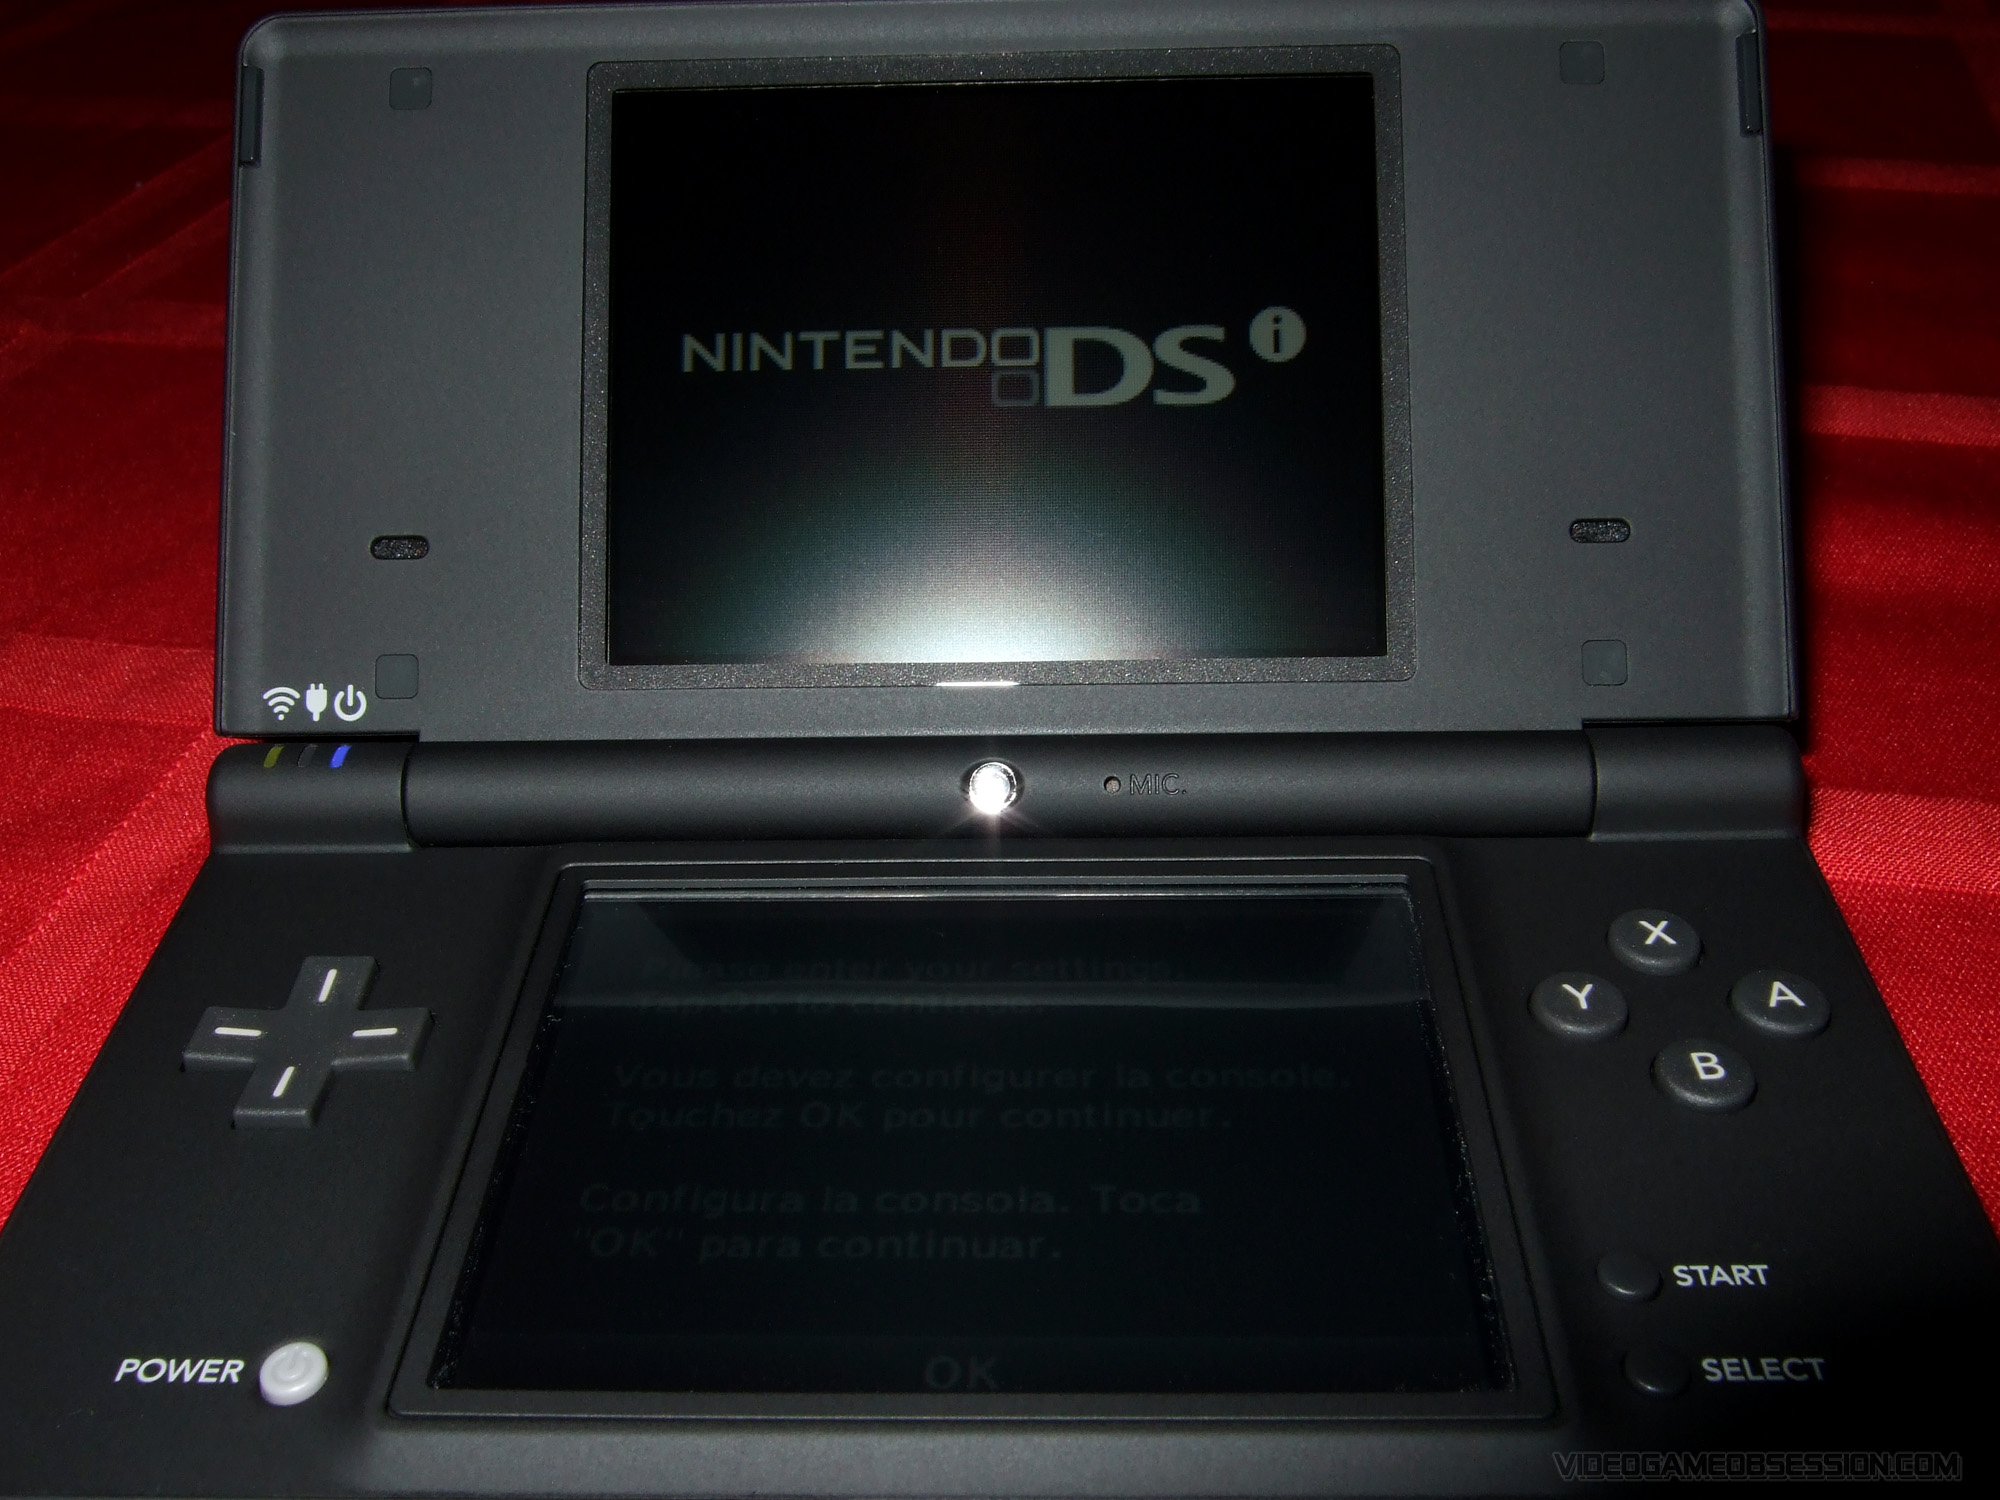 free-porn-videos-for-nintendo-dsi-ripped-babes-porn